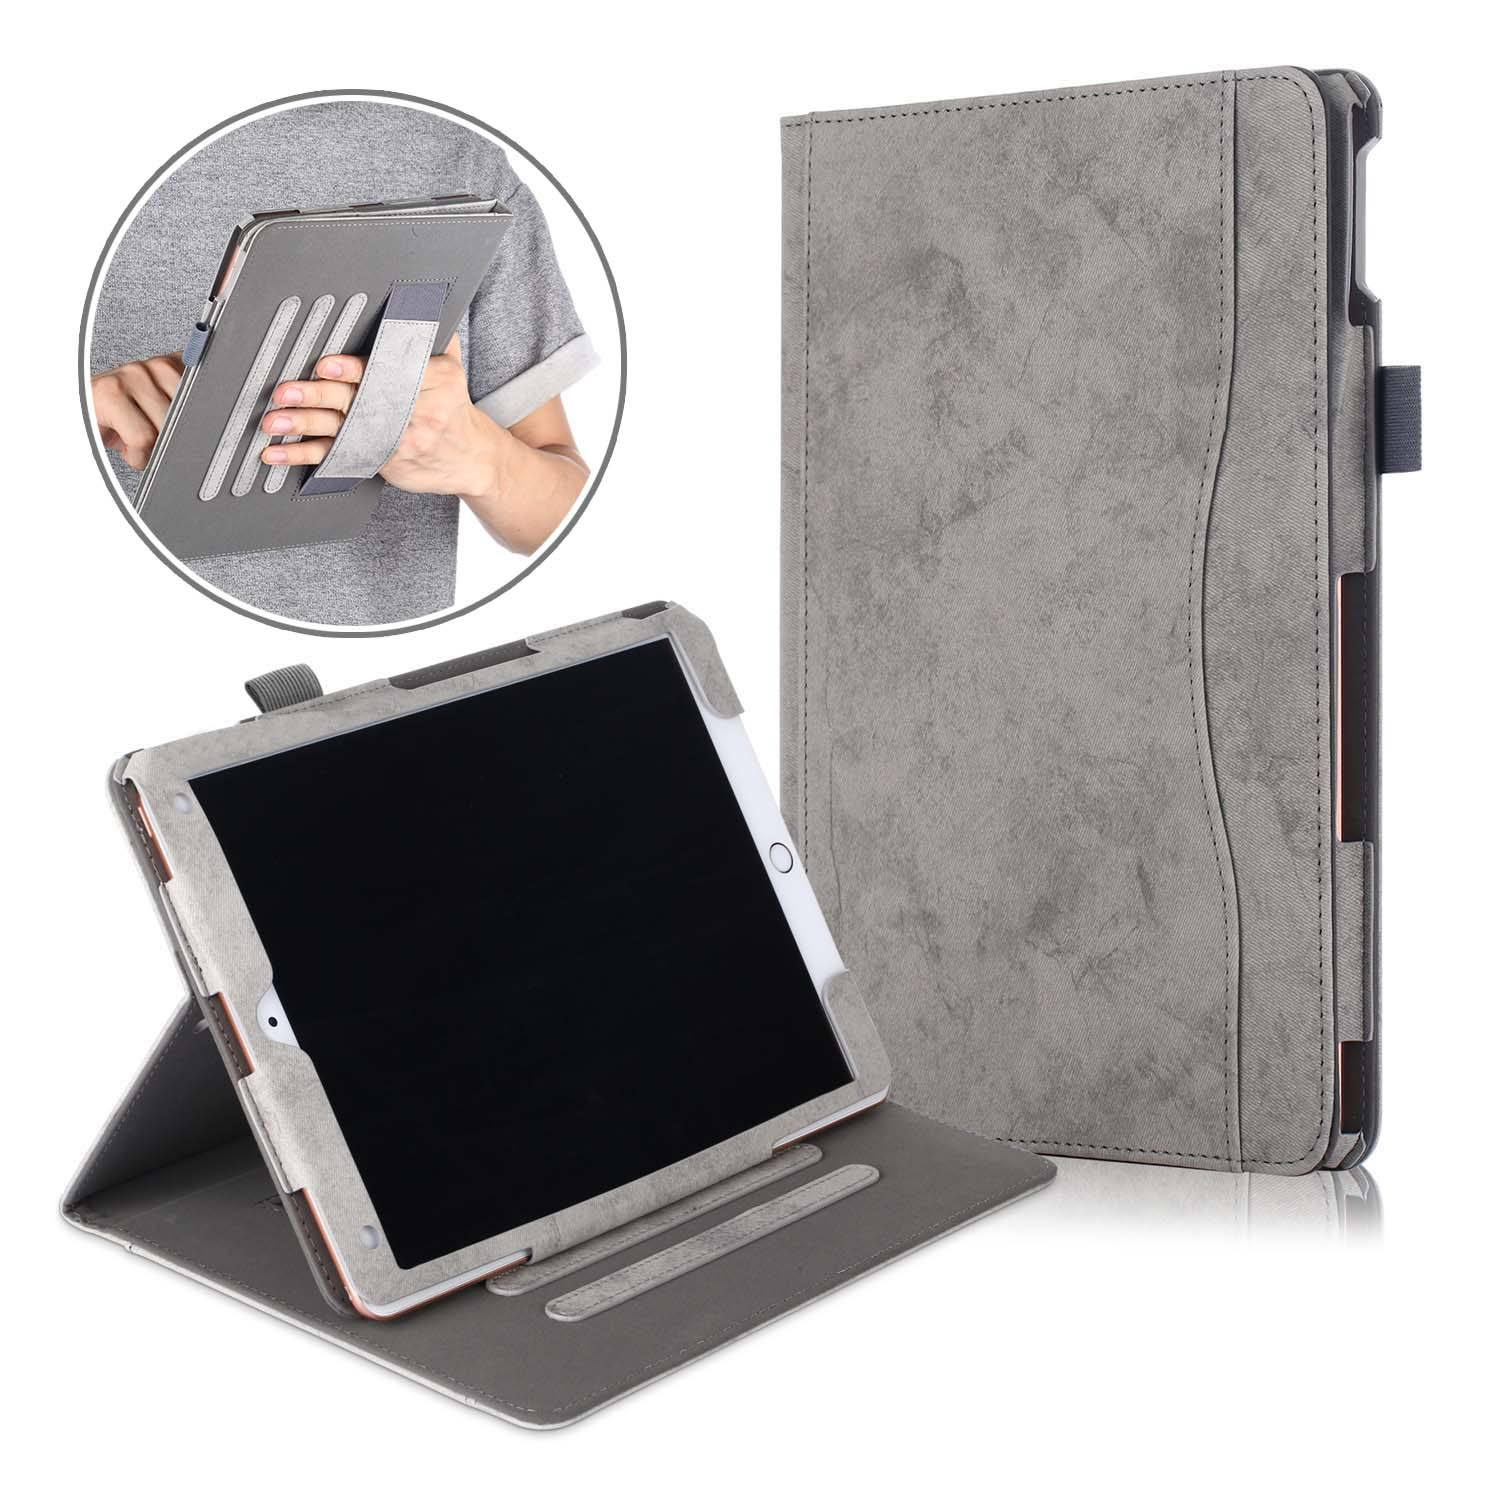 PU leather tablet cover case for ipad 10.2 10.5 Inch 2019